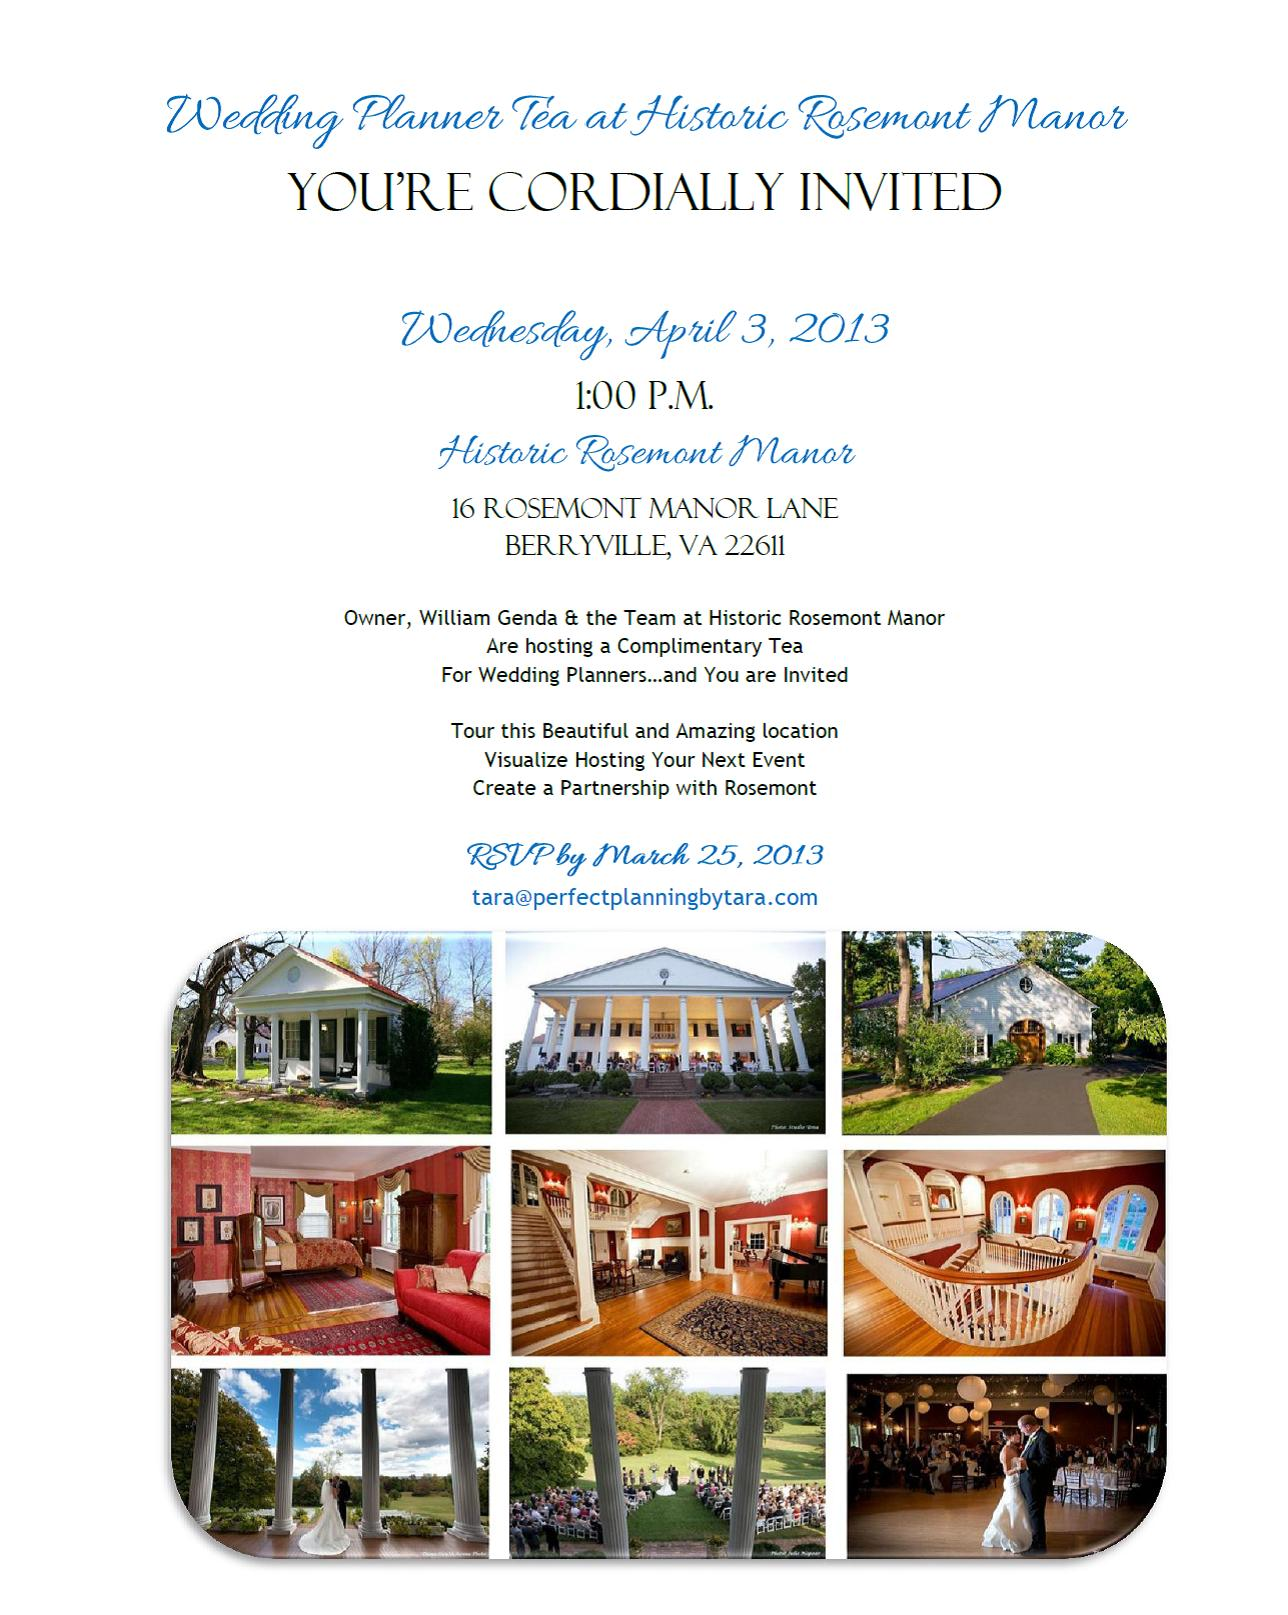 Wedding Planners You're Invited…Special Tea at Historic Rosemont Manor